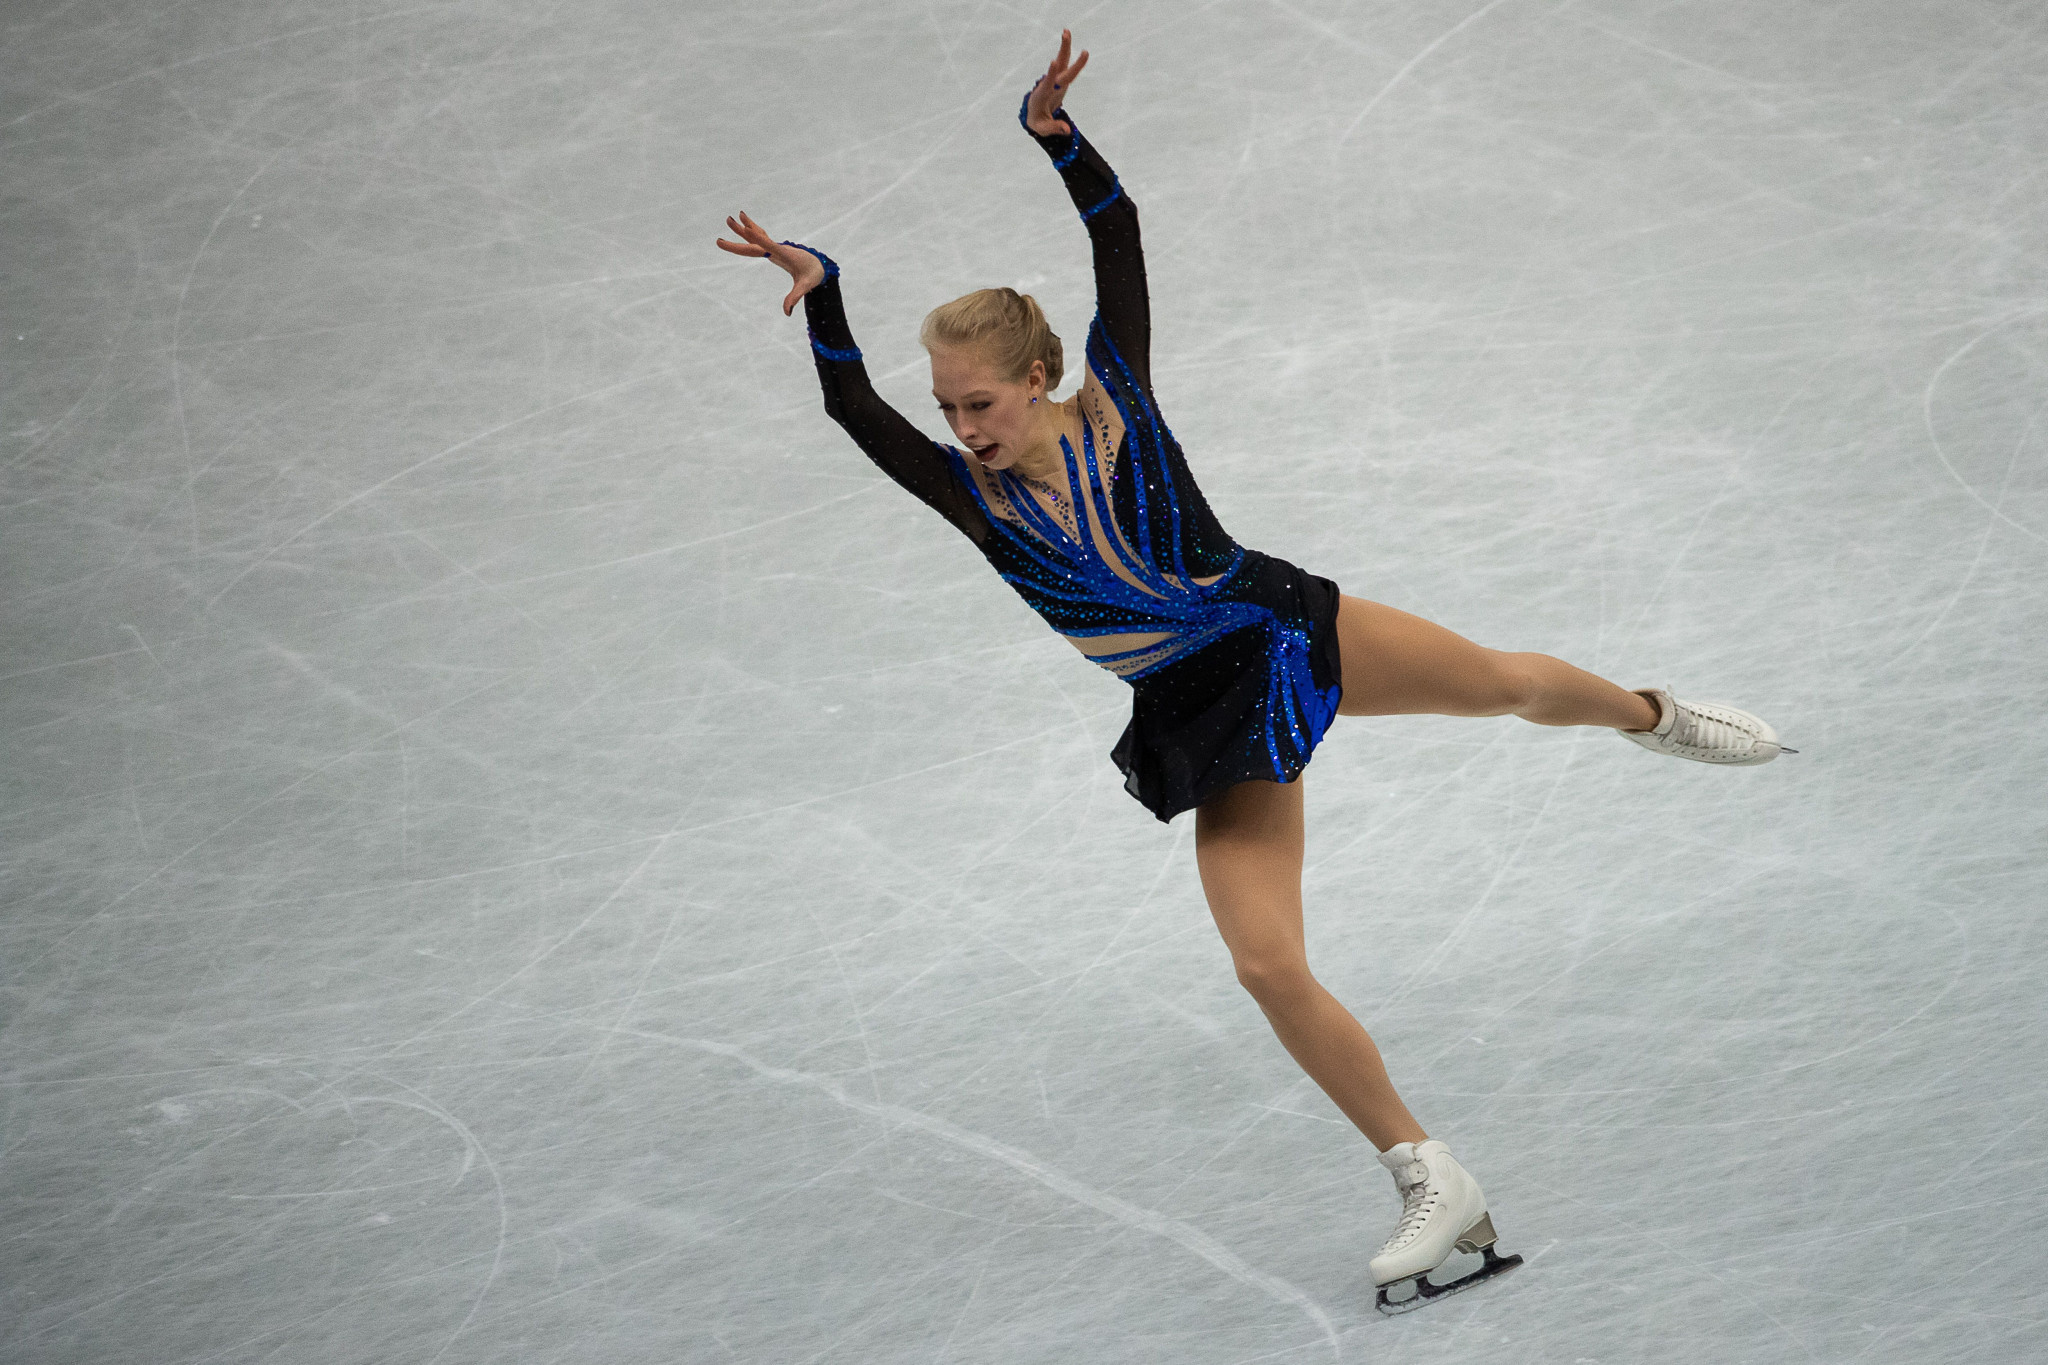 Bradie Tennell of the United States scored the most points in the women's programme ©Getty Images